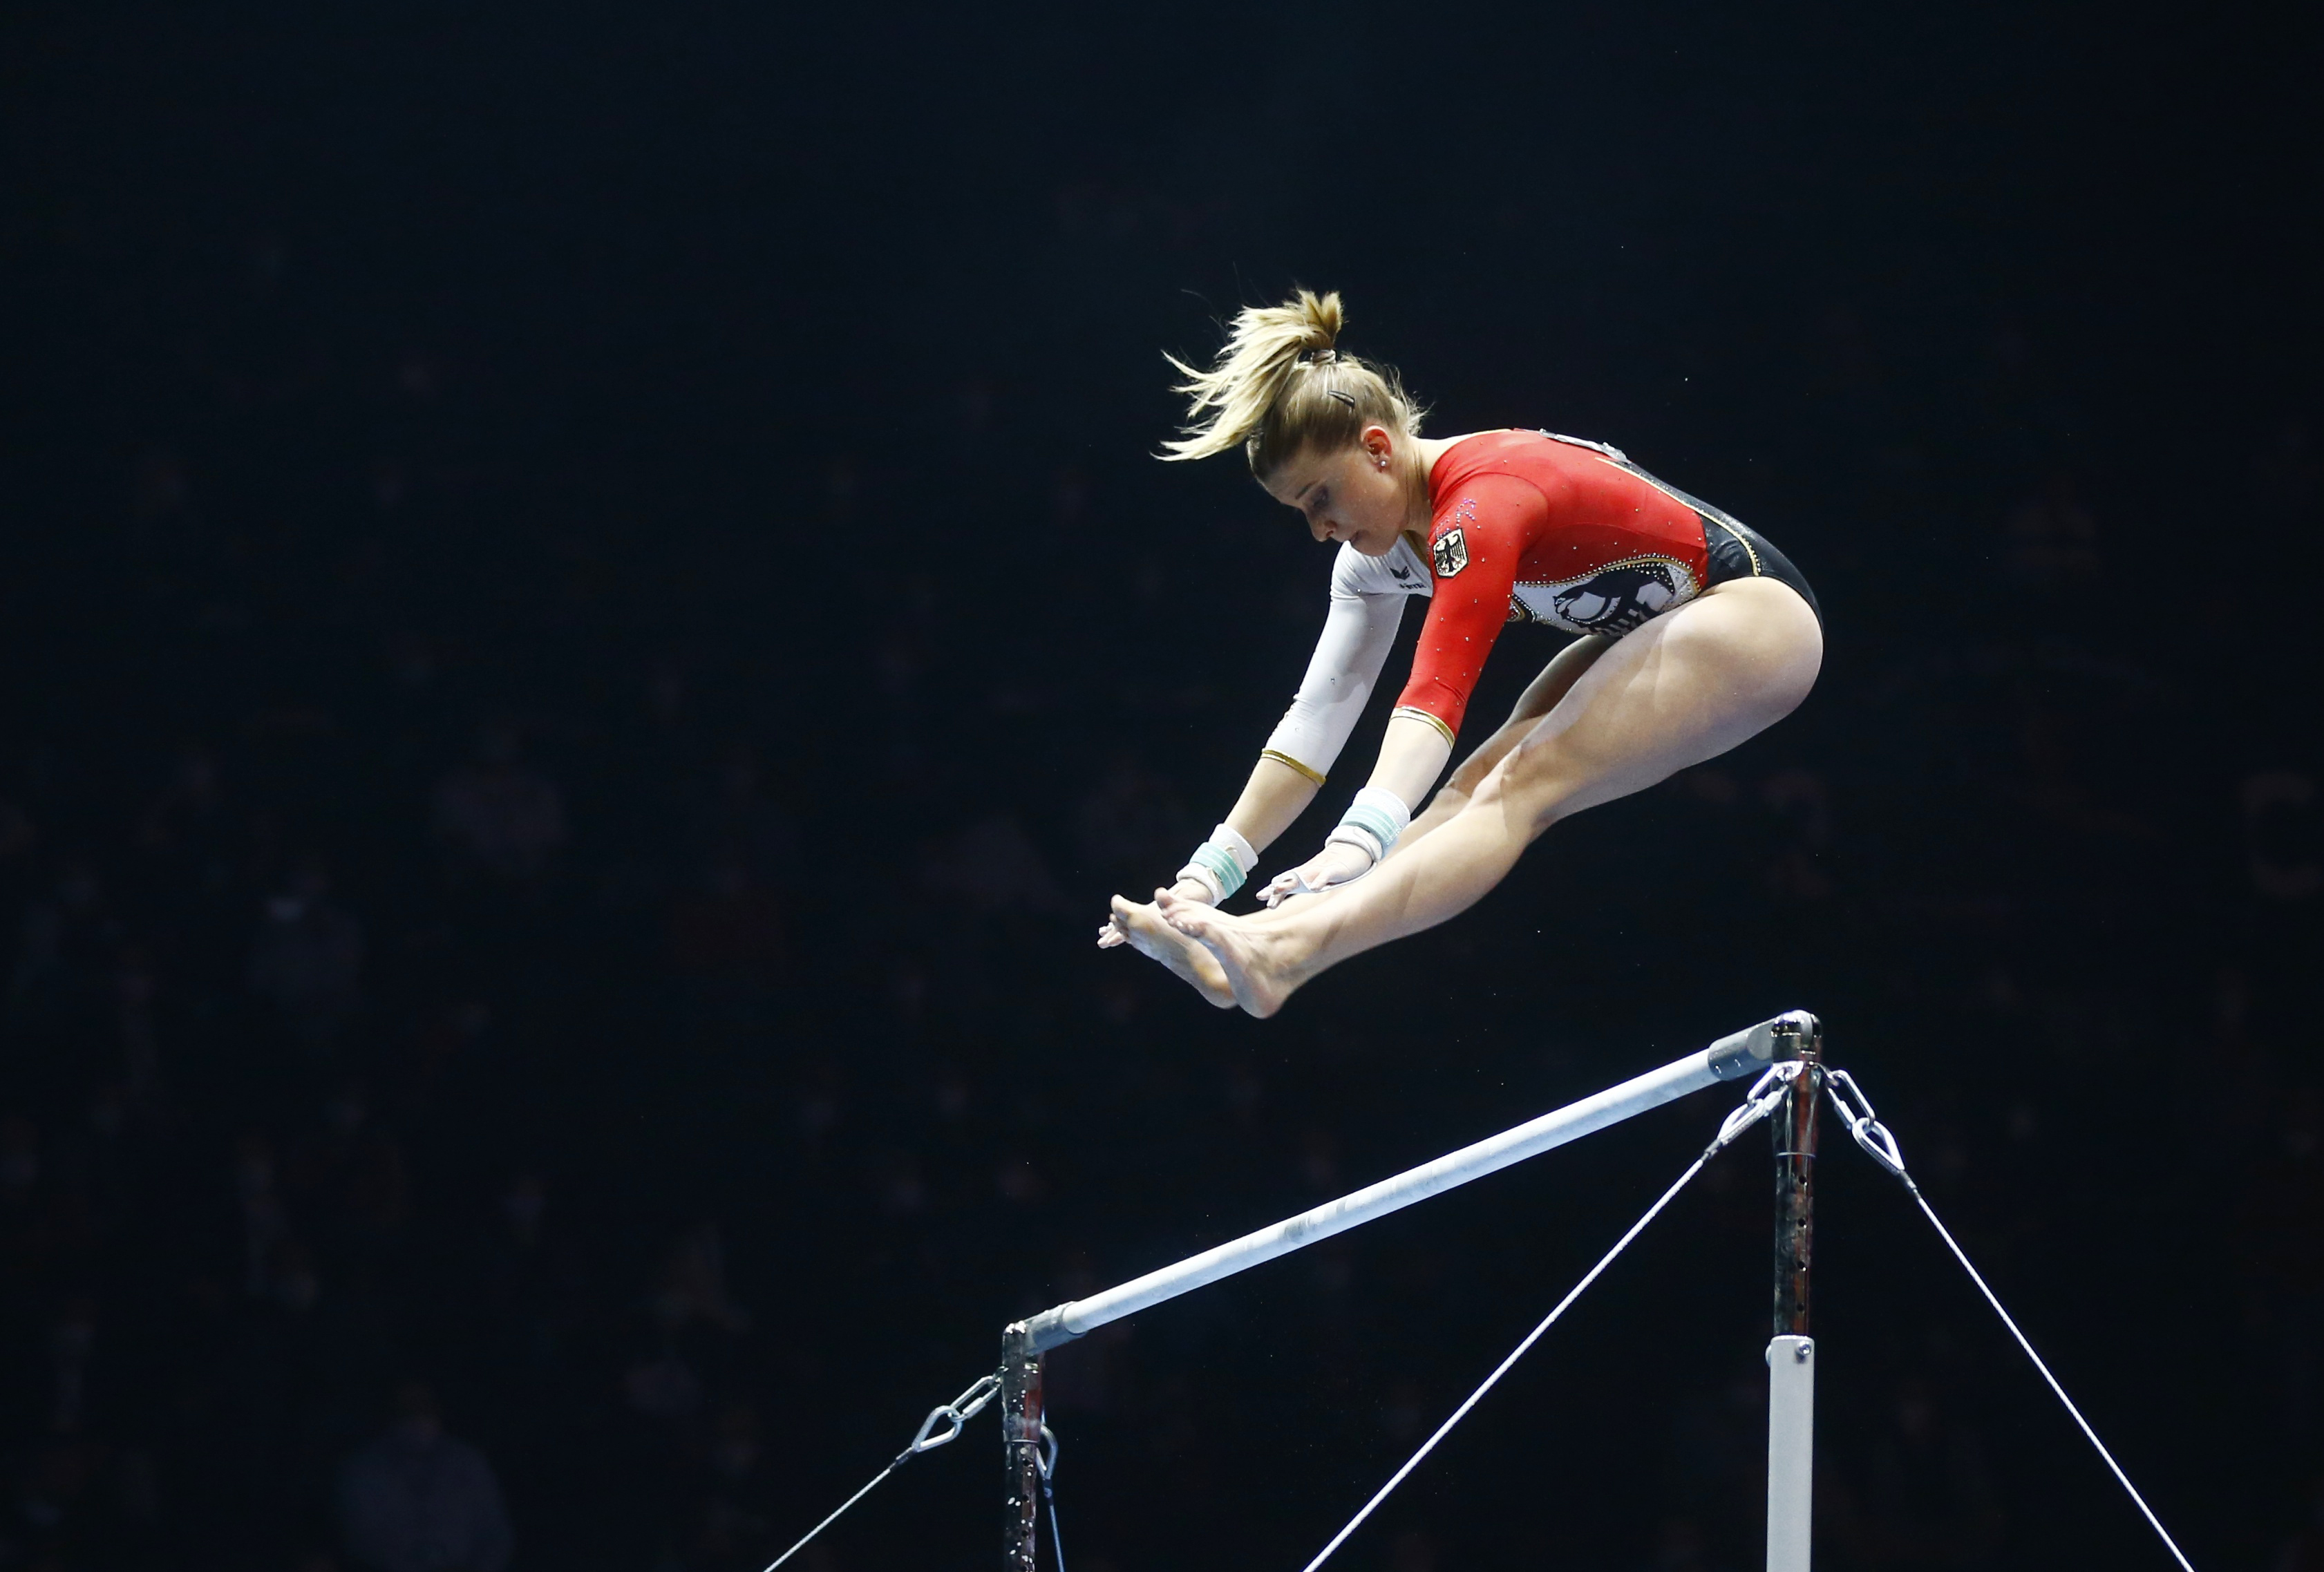 Gymnastics-German women take a stand in full-body suits in Tokyo   Reuters